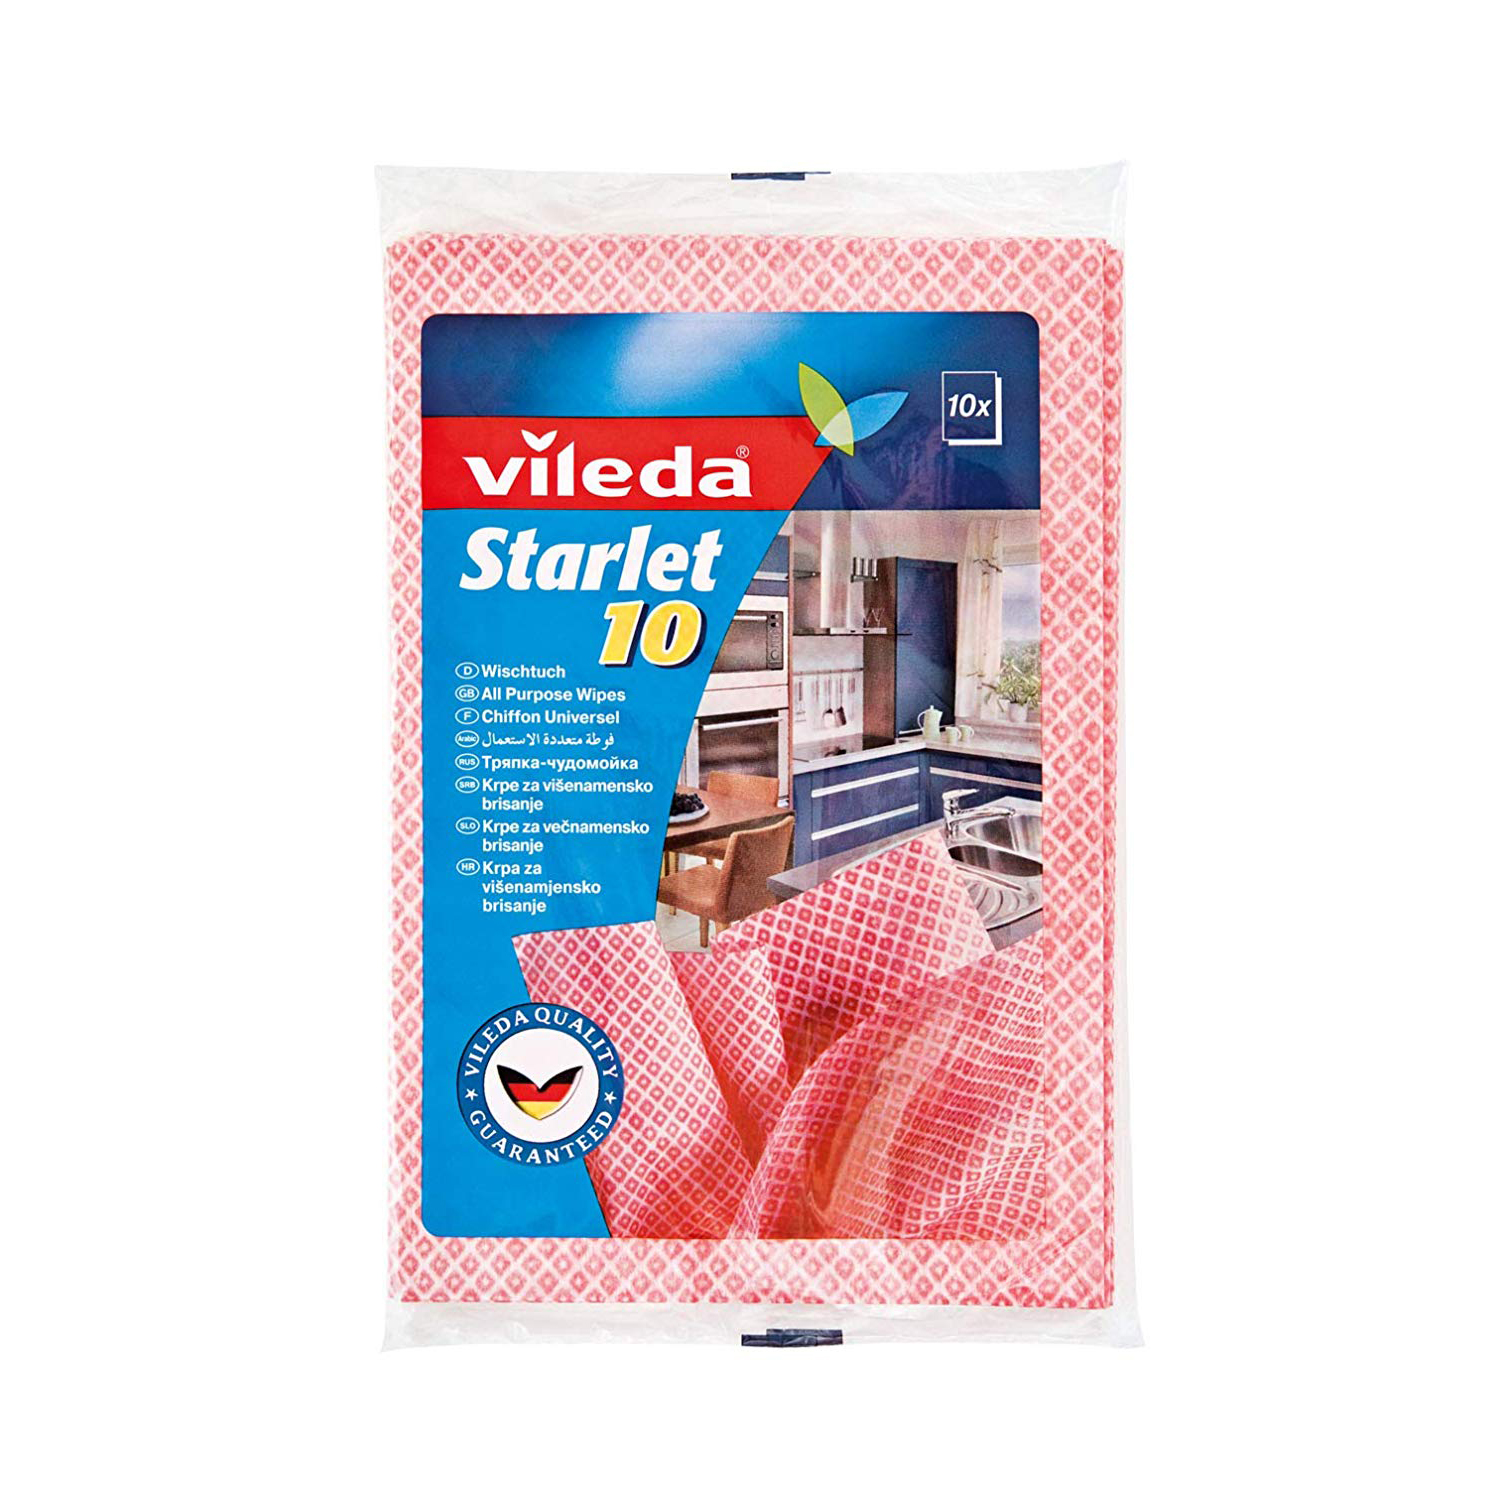 Vileda Starlet All-Purpose Cloth Wipes Semi-disposable Cleaning Cloth VLDW73517 (pkt/10pcs)